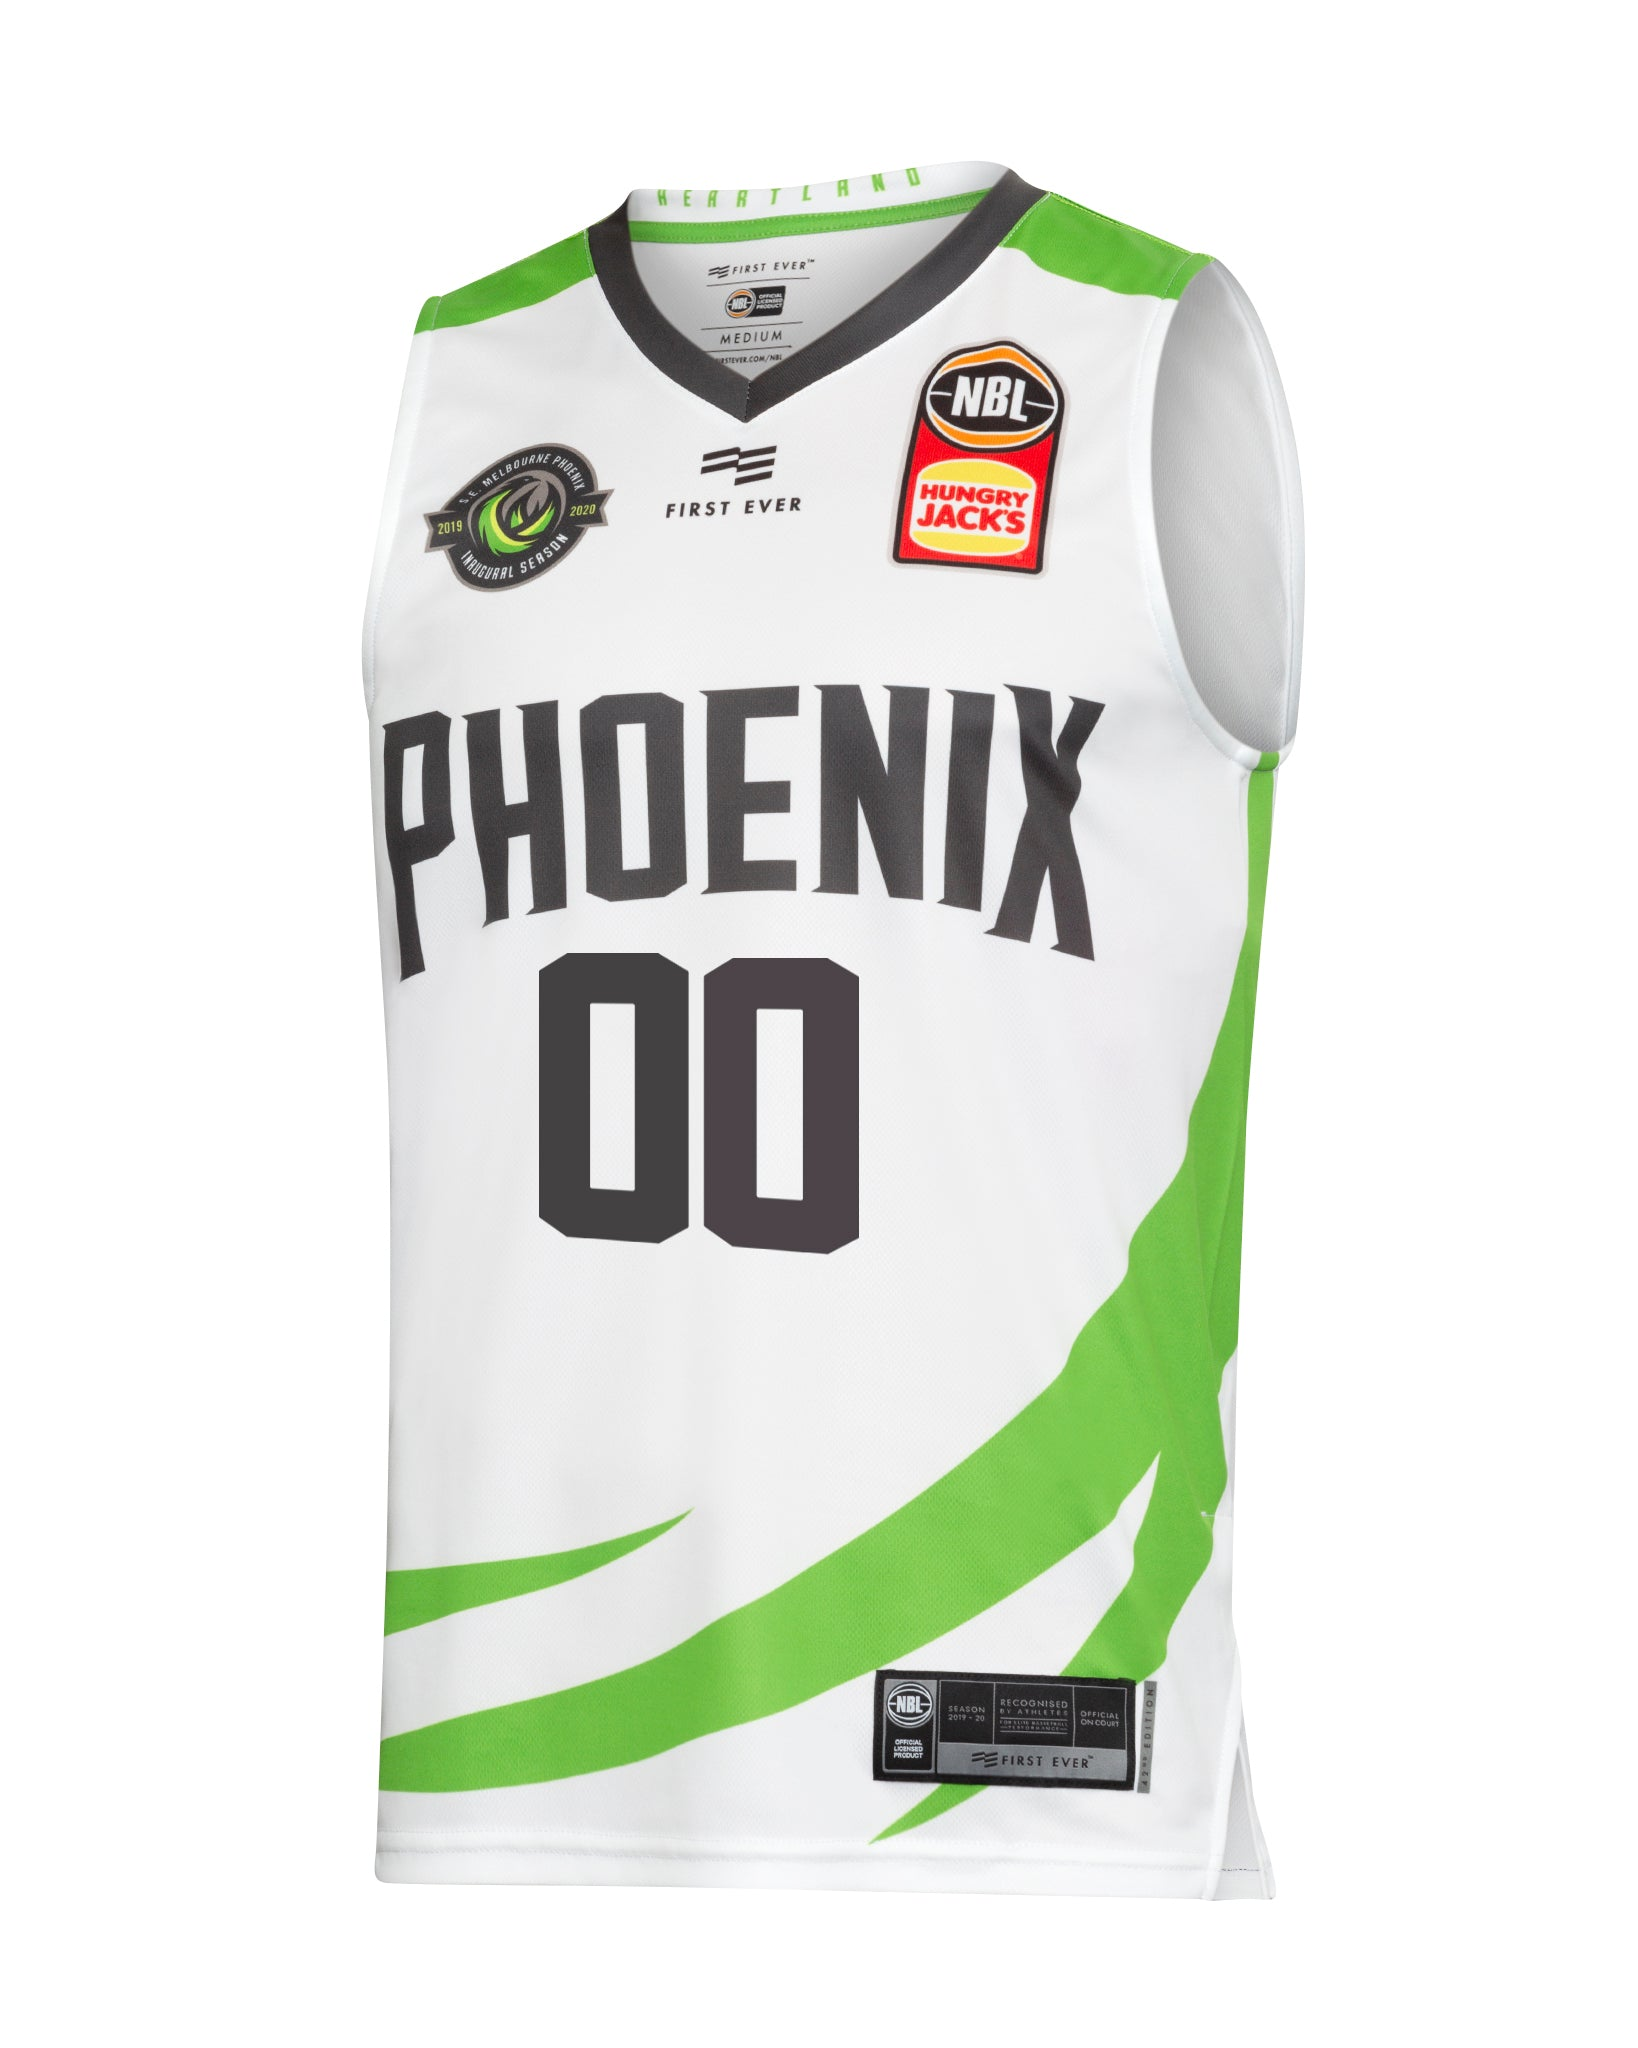 S.E. Melbourne Phoenix 19/20 Authentic Away Jersey - Other Players